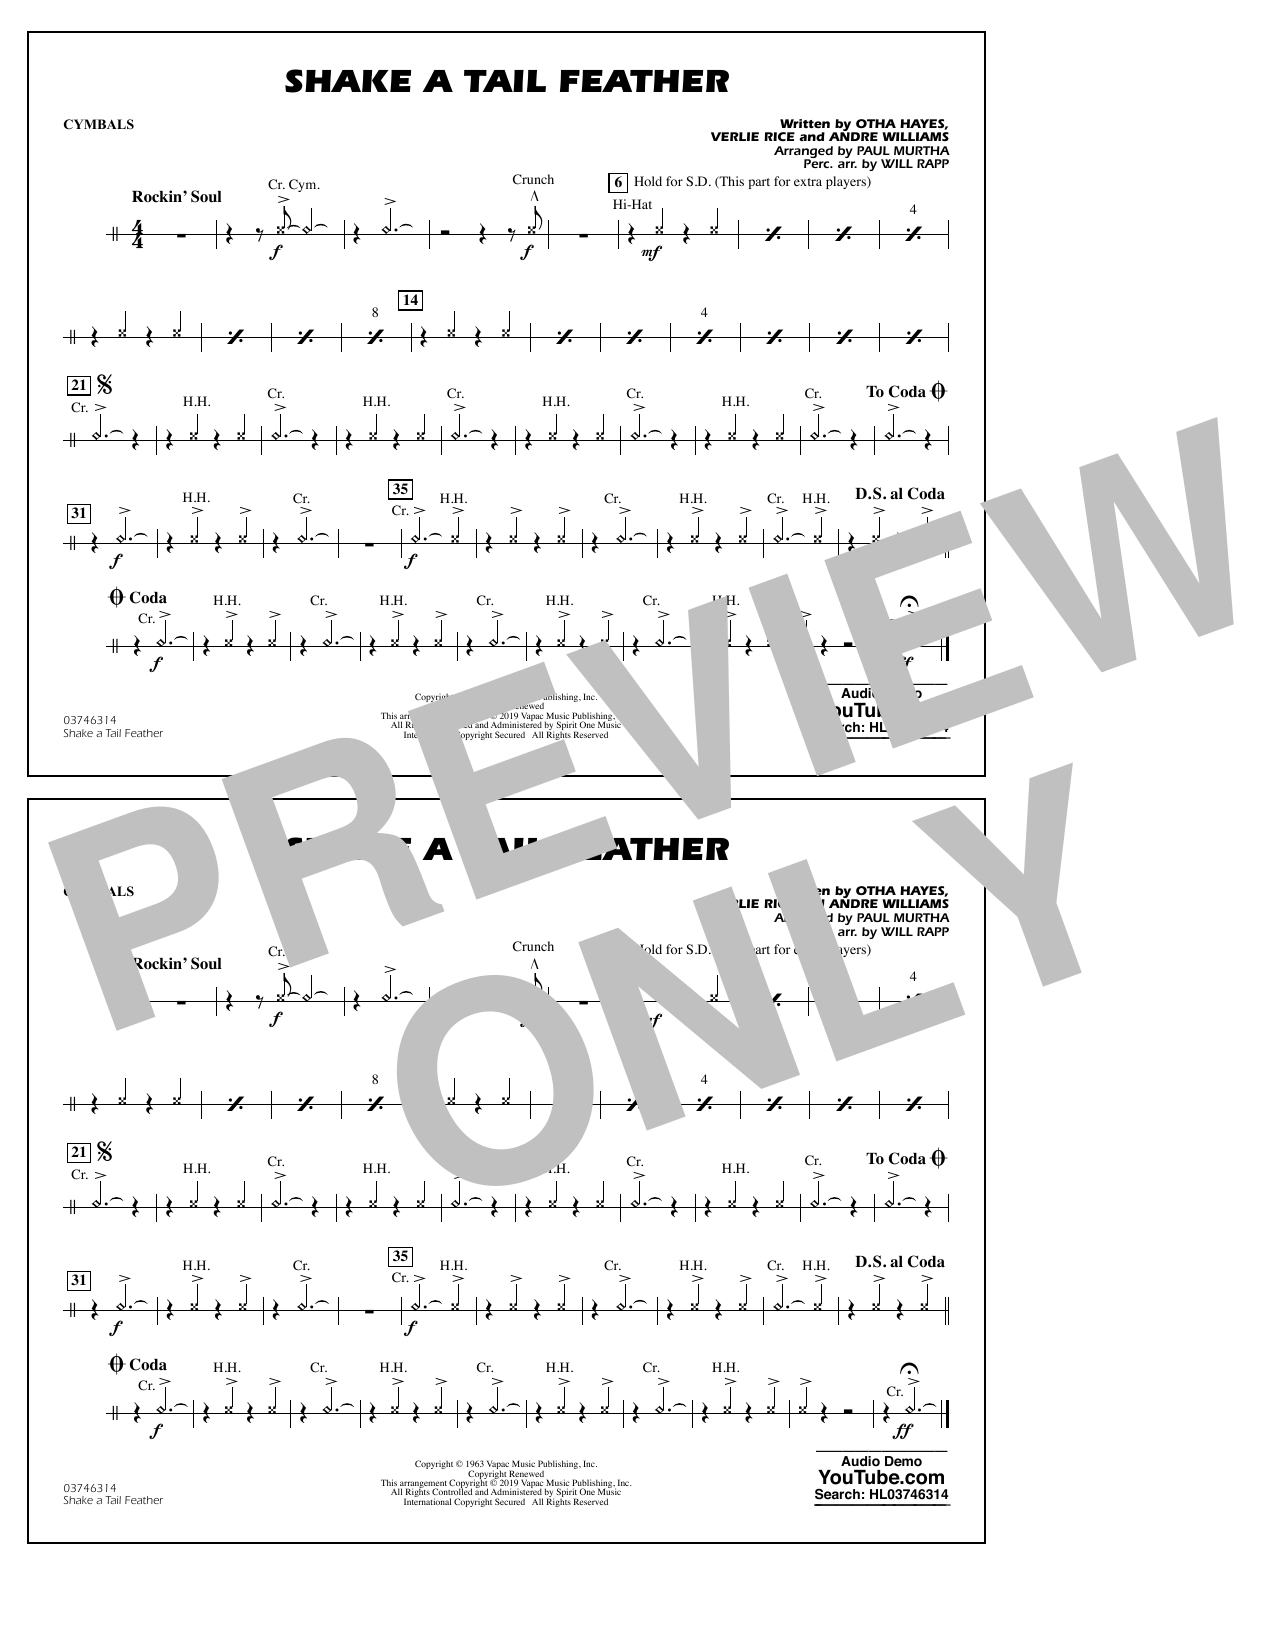 Ray Charles Shake a Tail Feather (arr. Paul Murtha) - Cymbals sheet music notes and chords